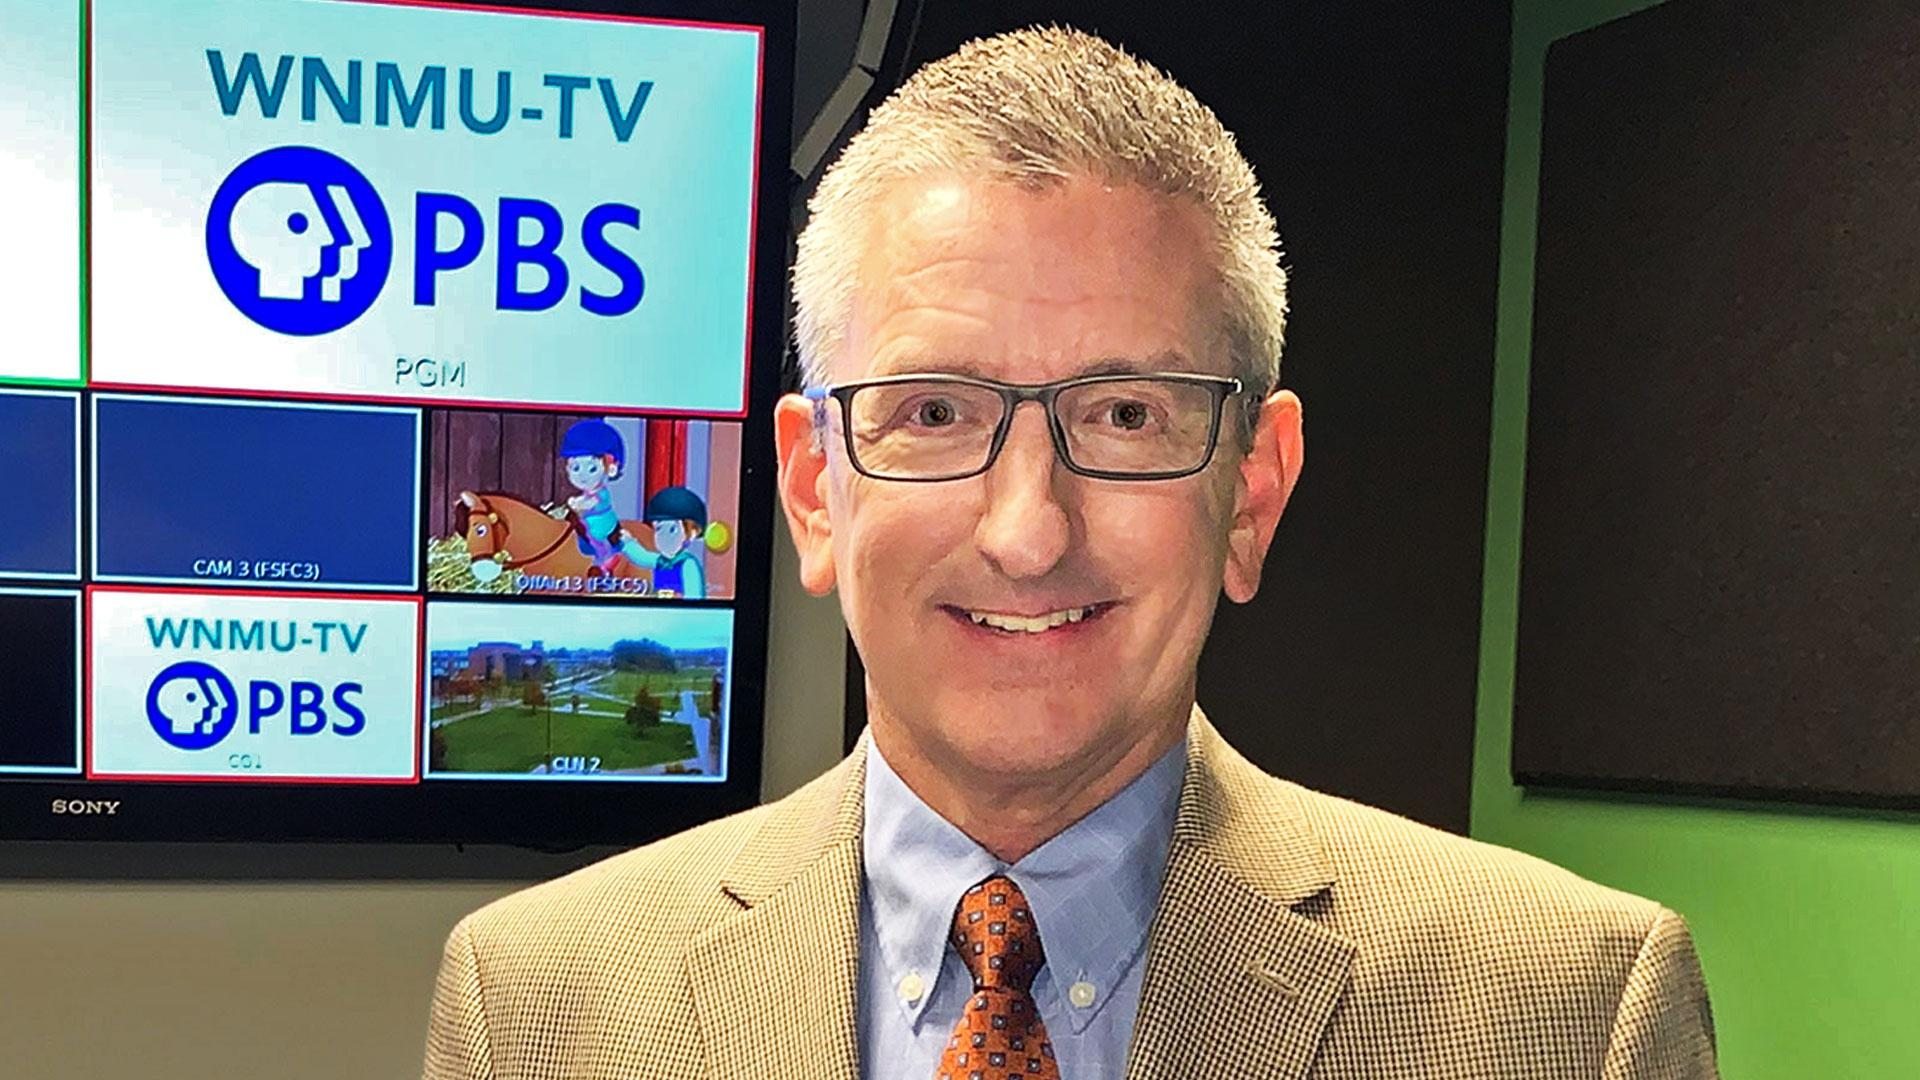 Mike Settles, Host and Producer of Media Meet